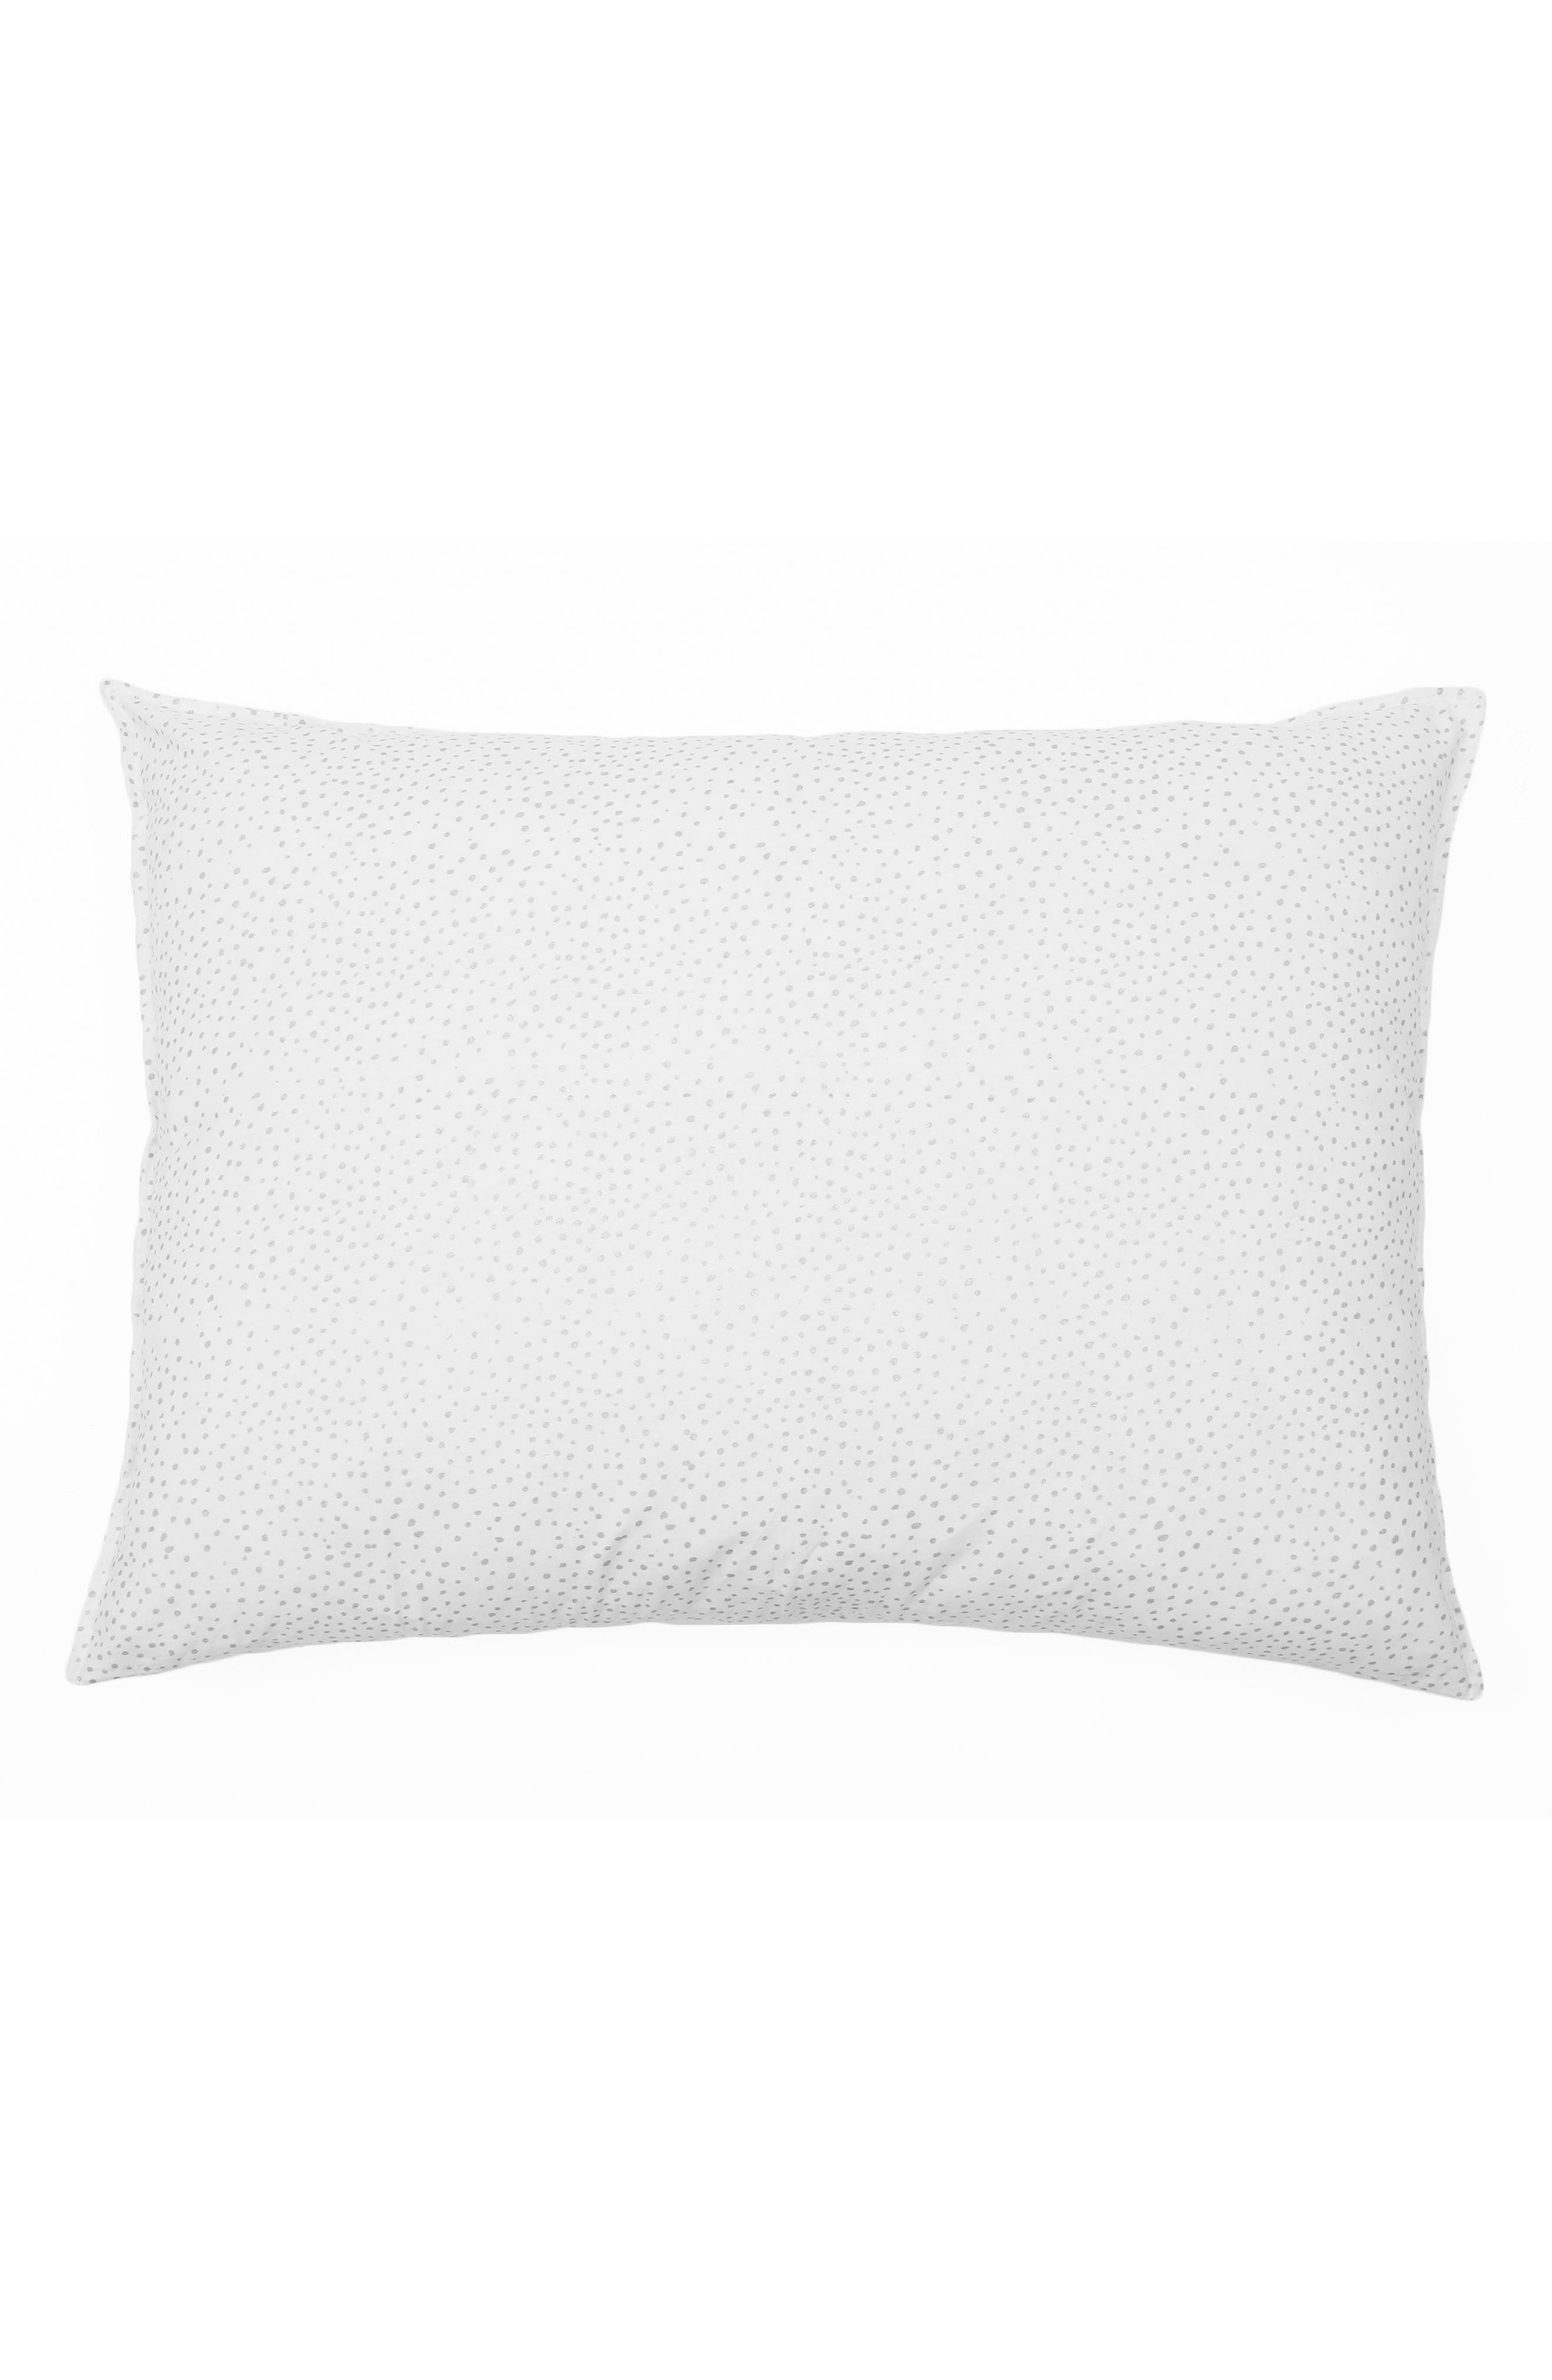 Dot Big Accent Pillow,                         Main,                         color, SILVER